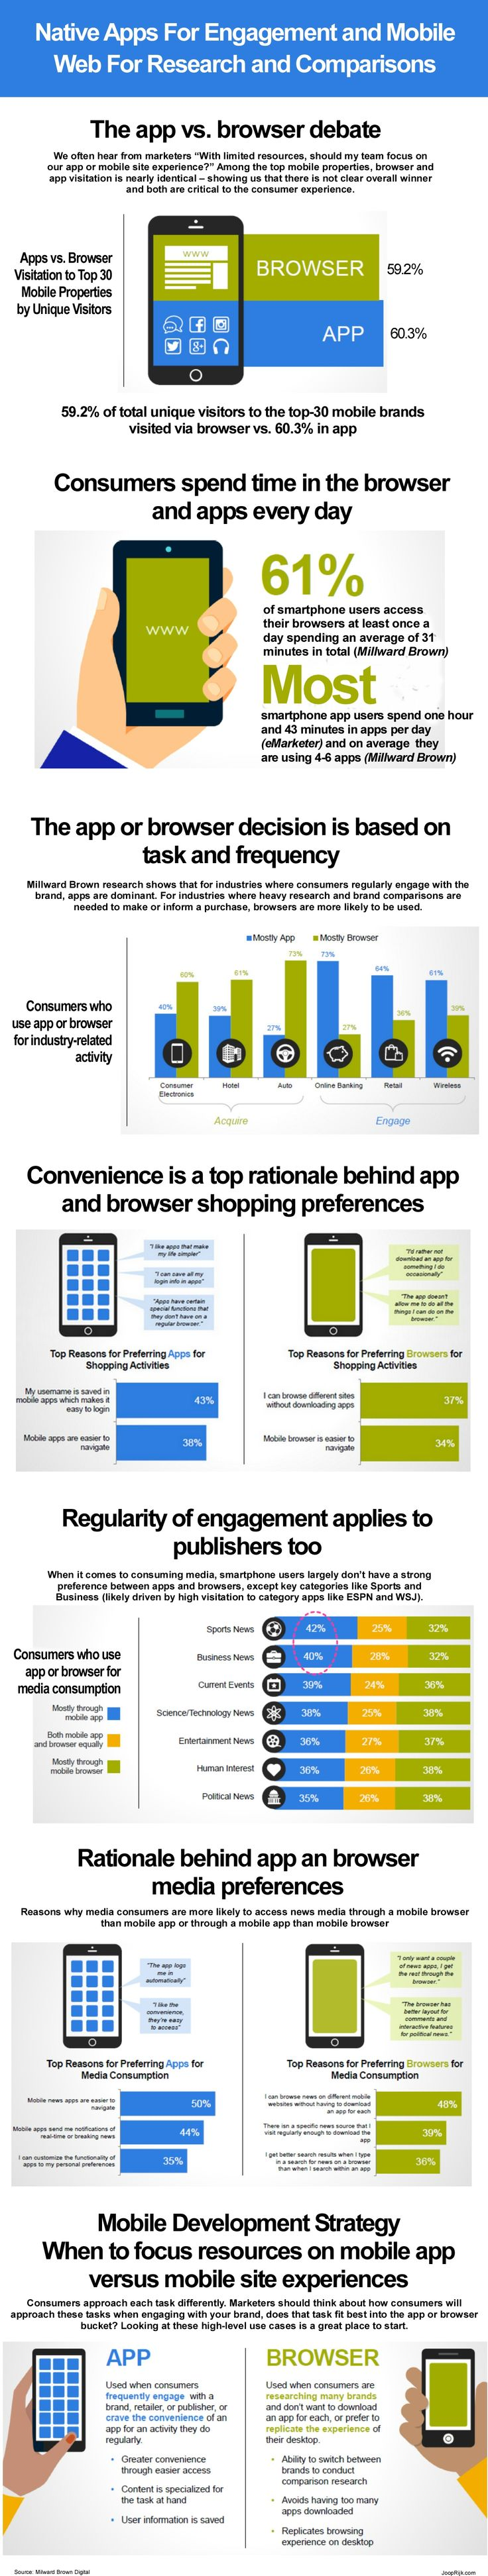 A new Millward Brown study offers insight into why and when smartphone users are using a native app versus the mobile web. The study, which was conducted over a period of 8 months from January to August 2015, shows that whether smartphone users use a native app or mobile web browser is often based on the type of task they want to perform and the frequency. This often means that native apps are used for engagement and the mobile web for research and comparisons. #mobile #app #web